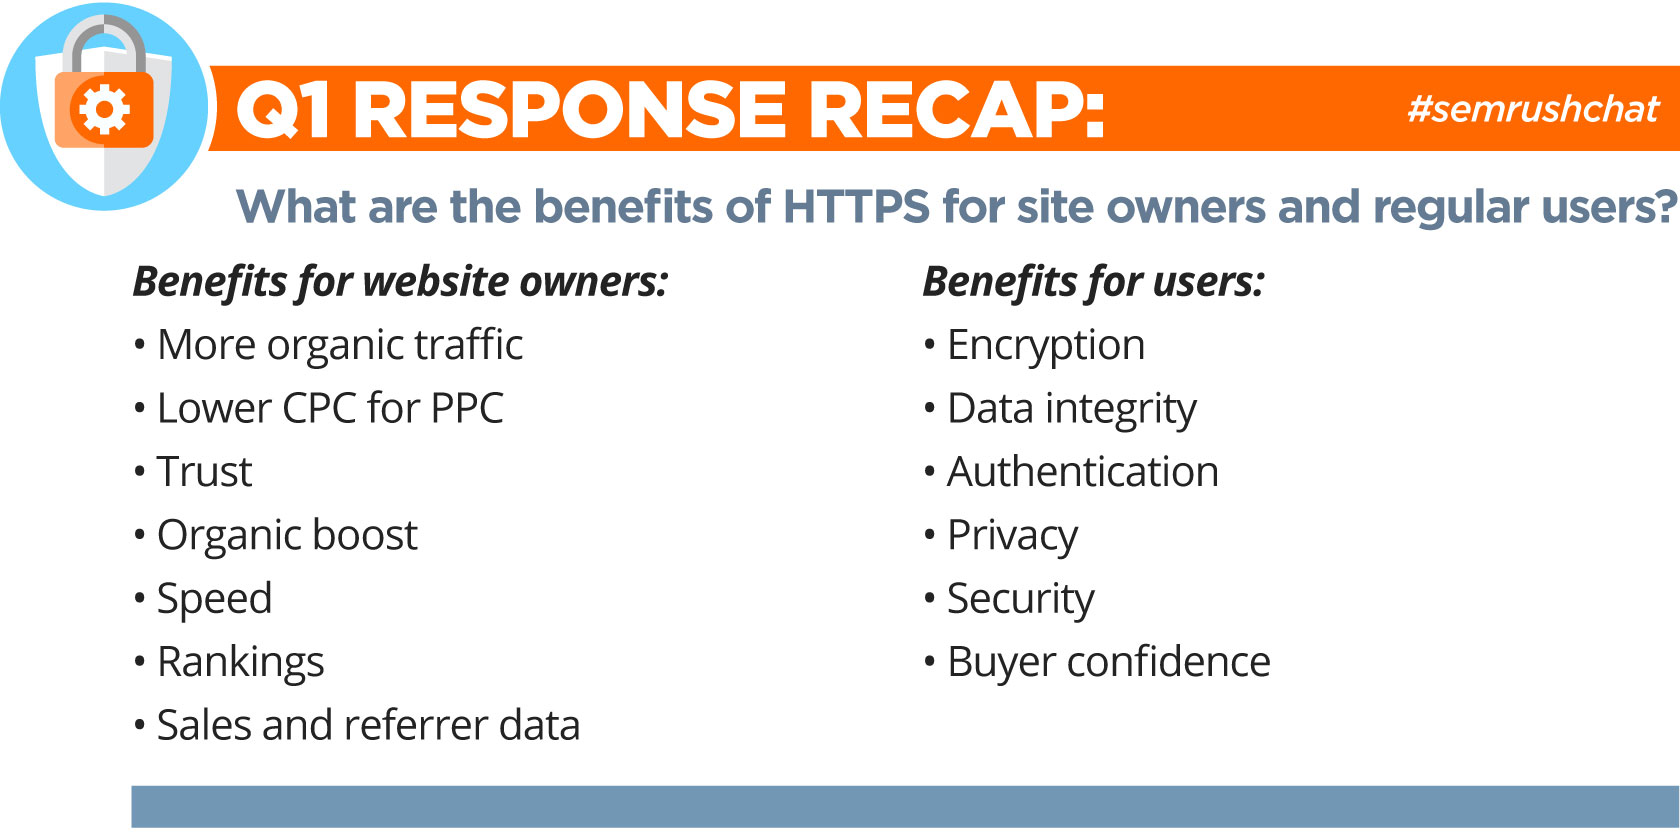 SEMrush Chat Recap Q1